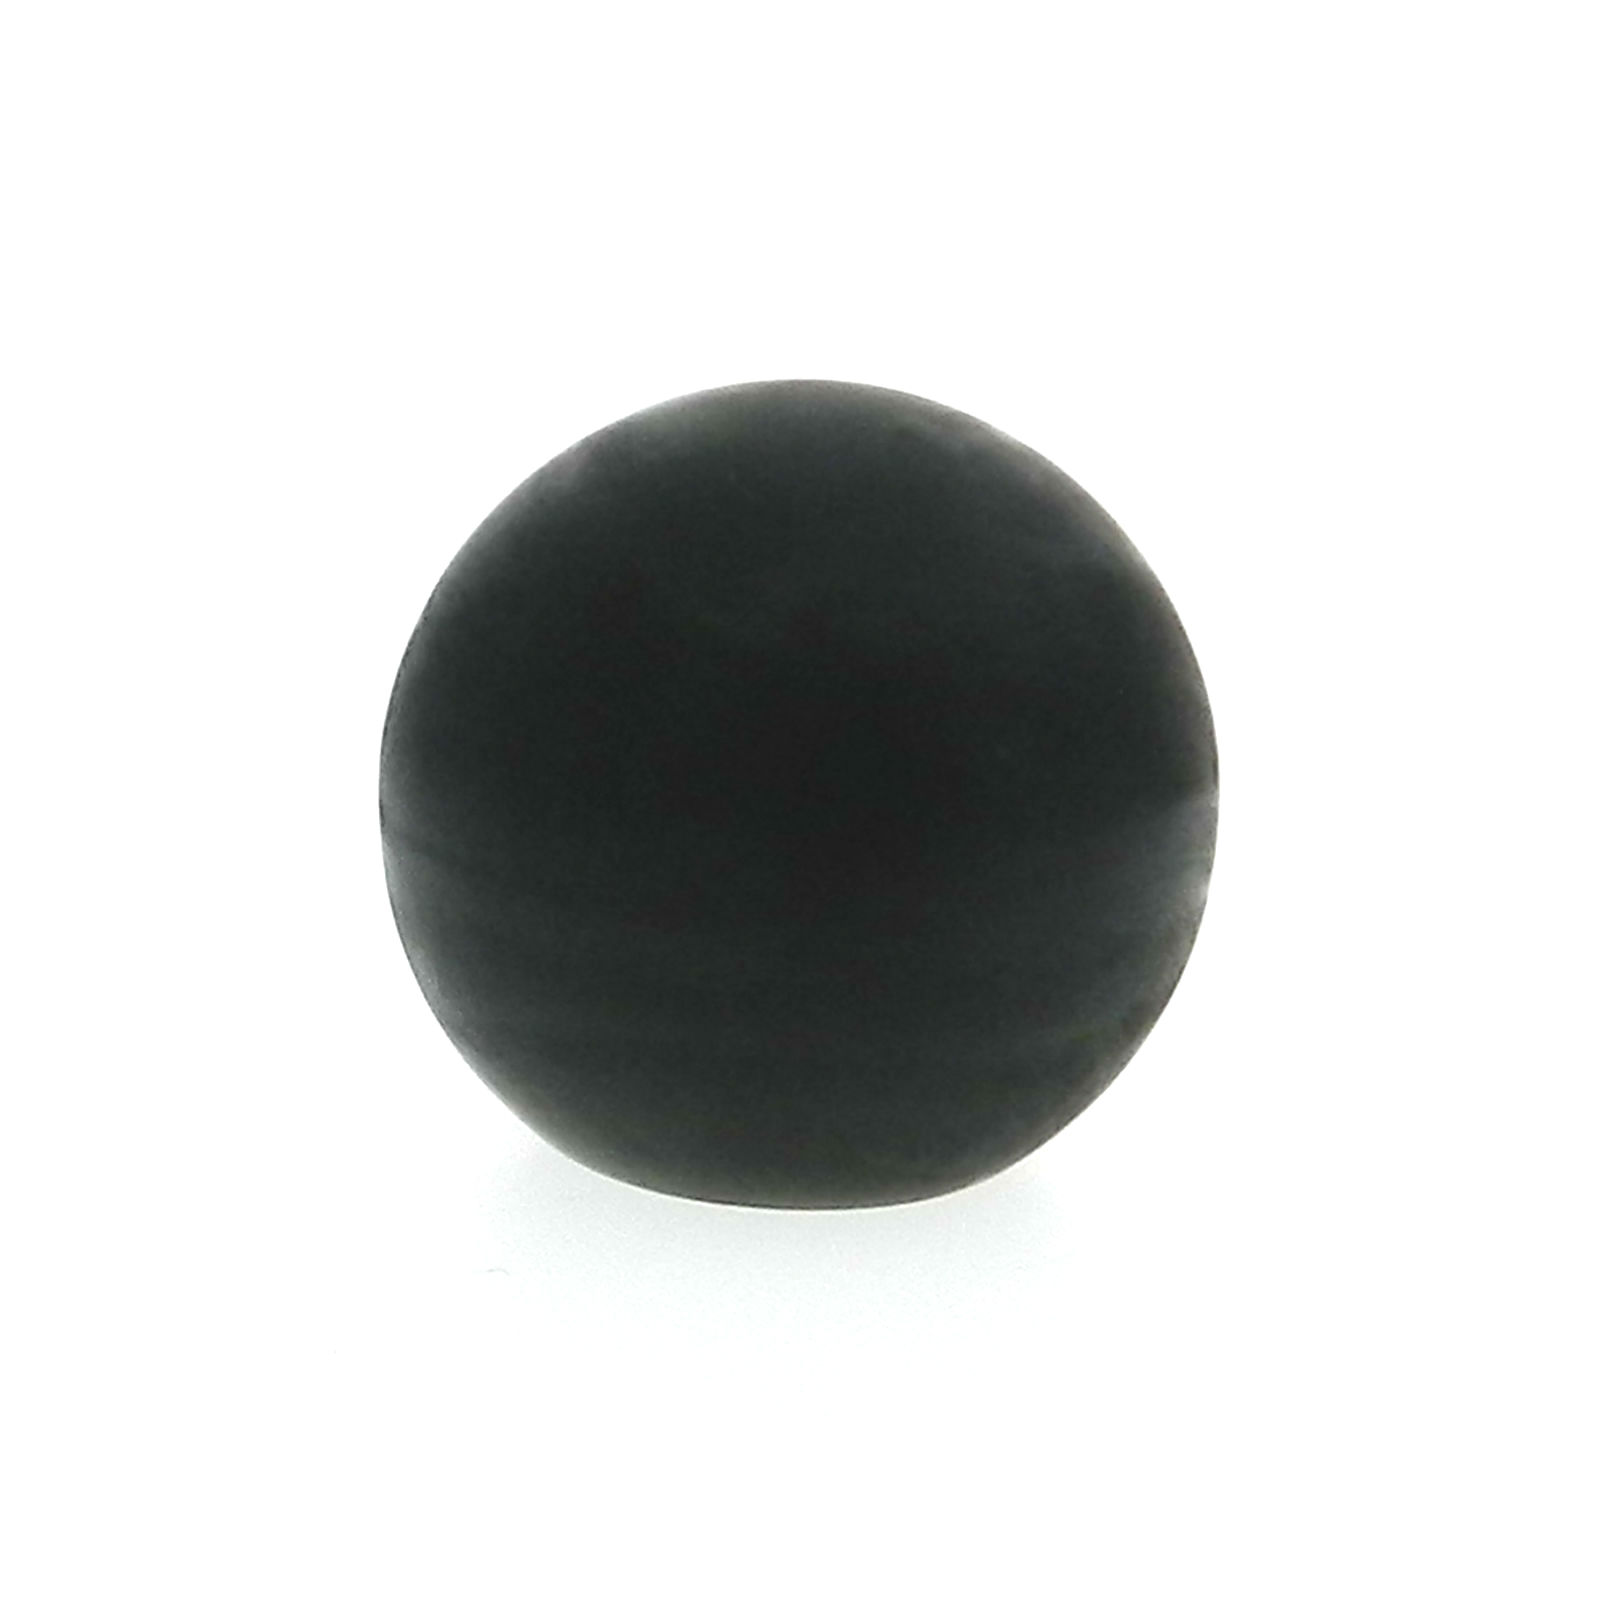 A soft plastic ball hand knob with a tapped hole